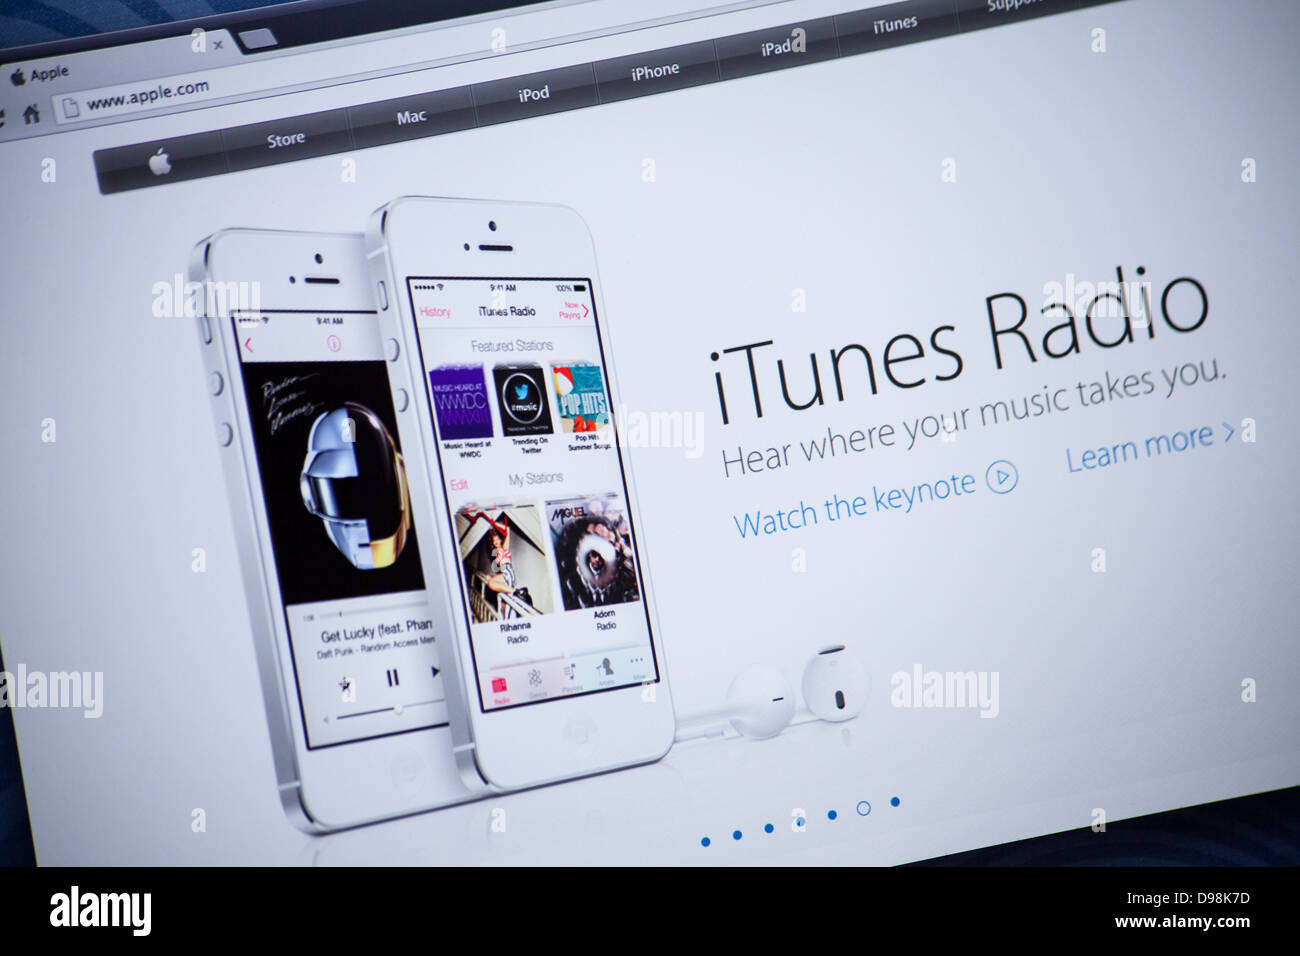 Apple website screenshot with iTunes Radio presentation page - Stock Image